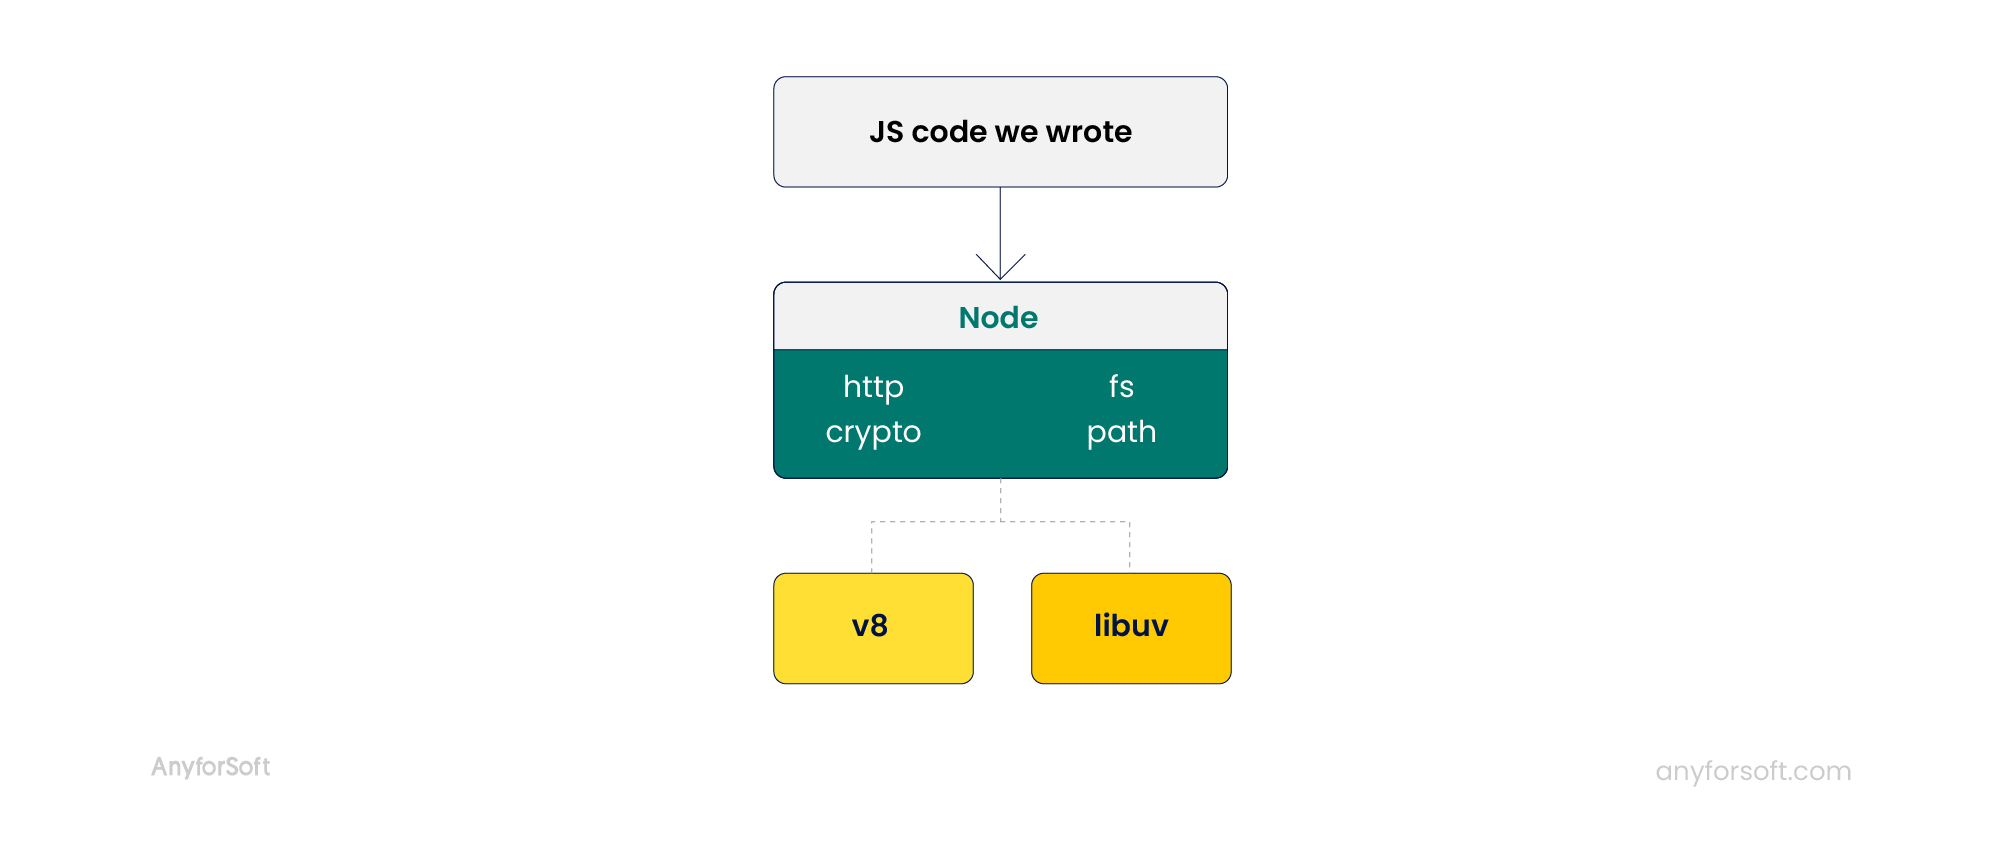 modules dependent on libuv